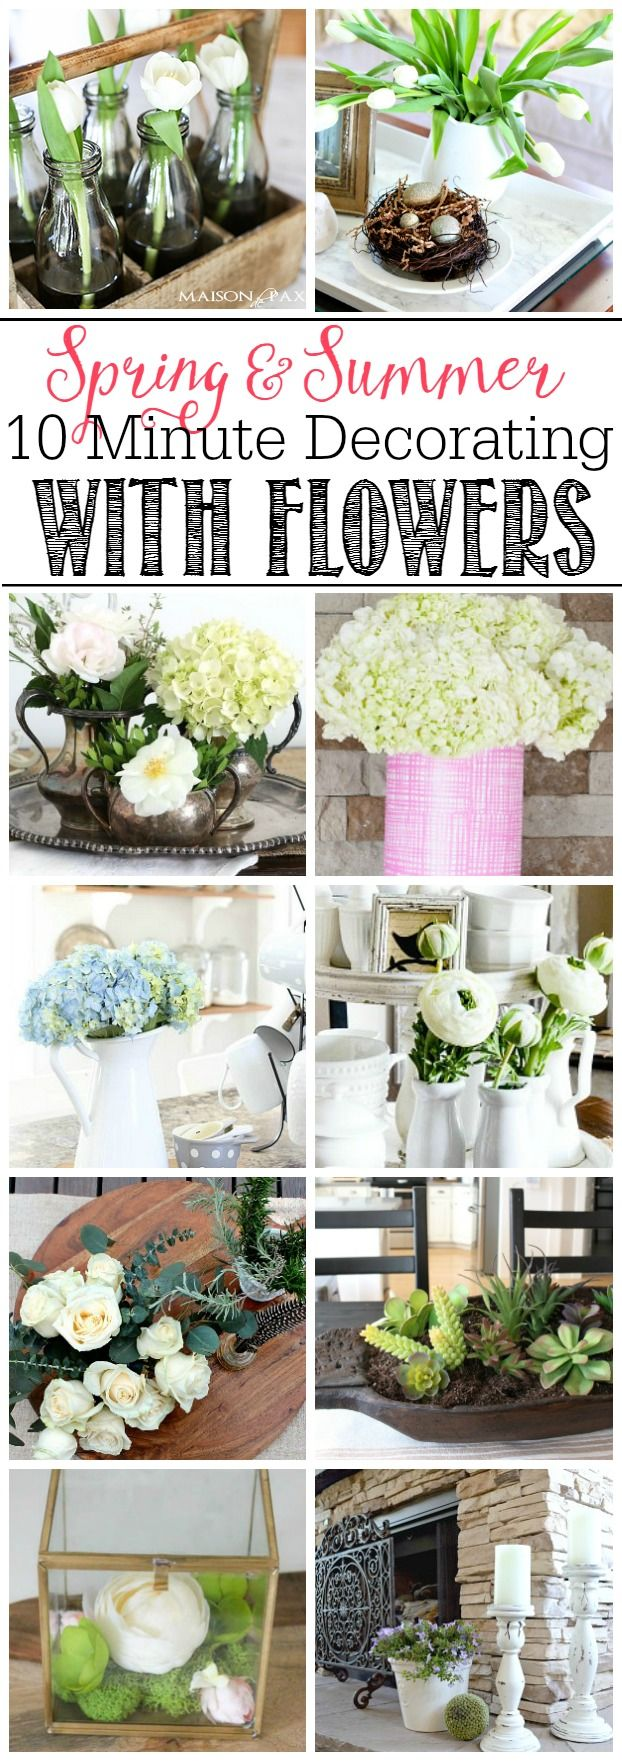 Beautiful Quick And Easy Ways To Decorate Your Home For Spring Or Summer Using Flowers.  10